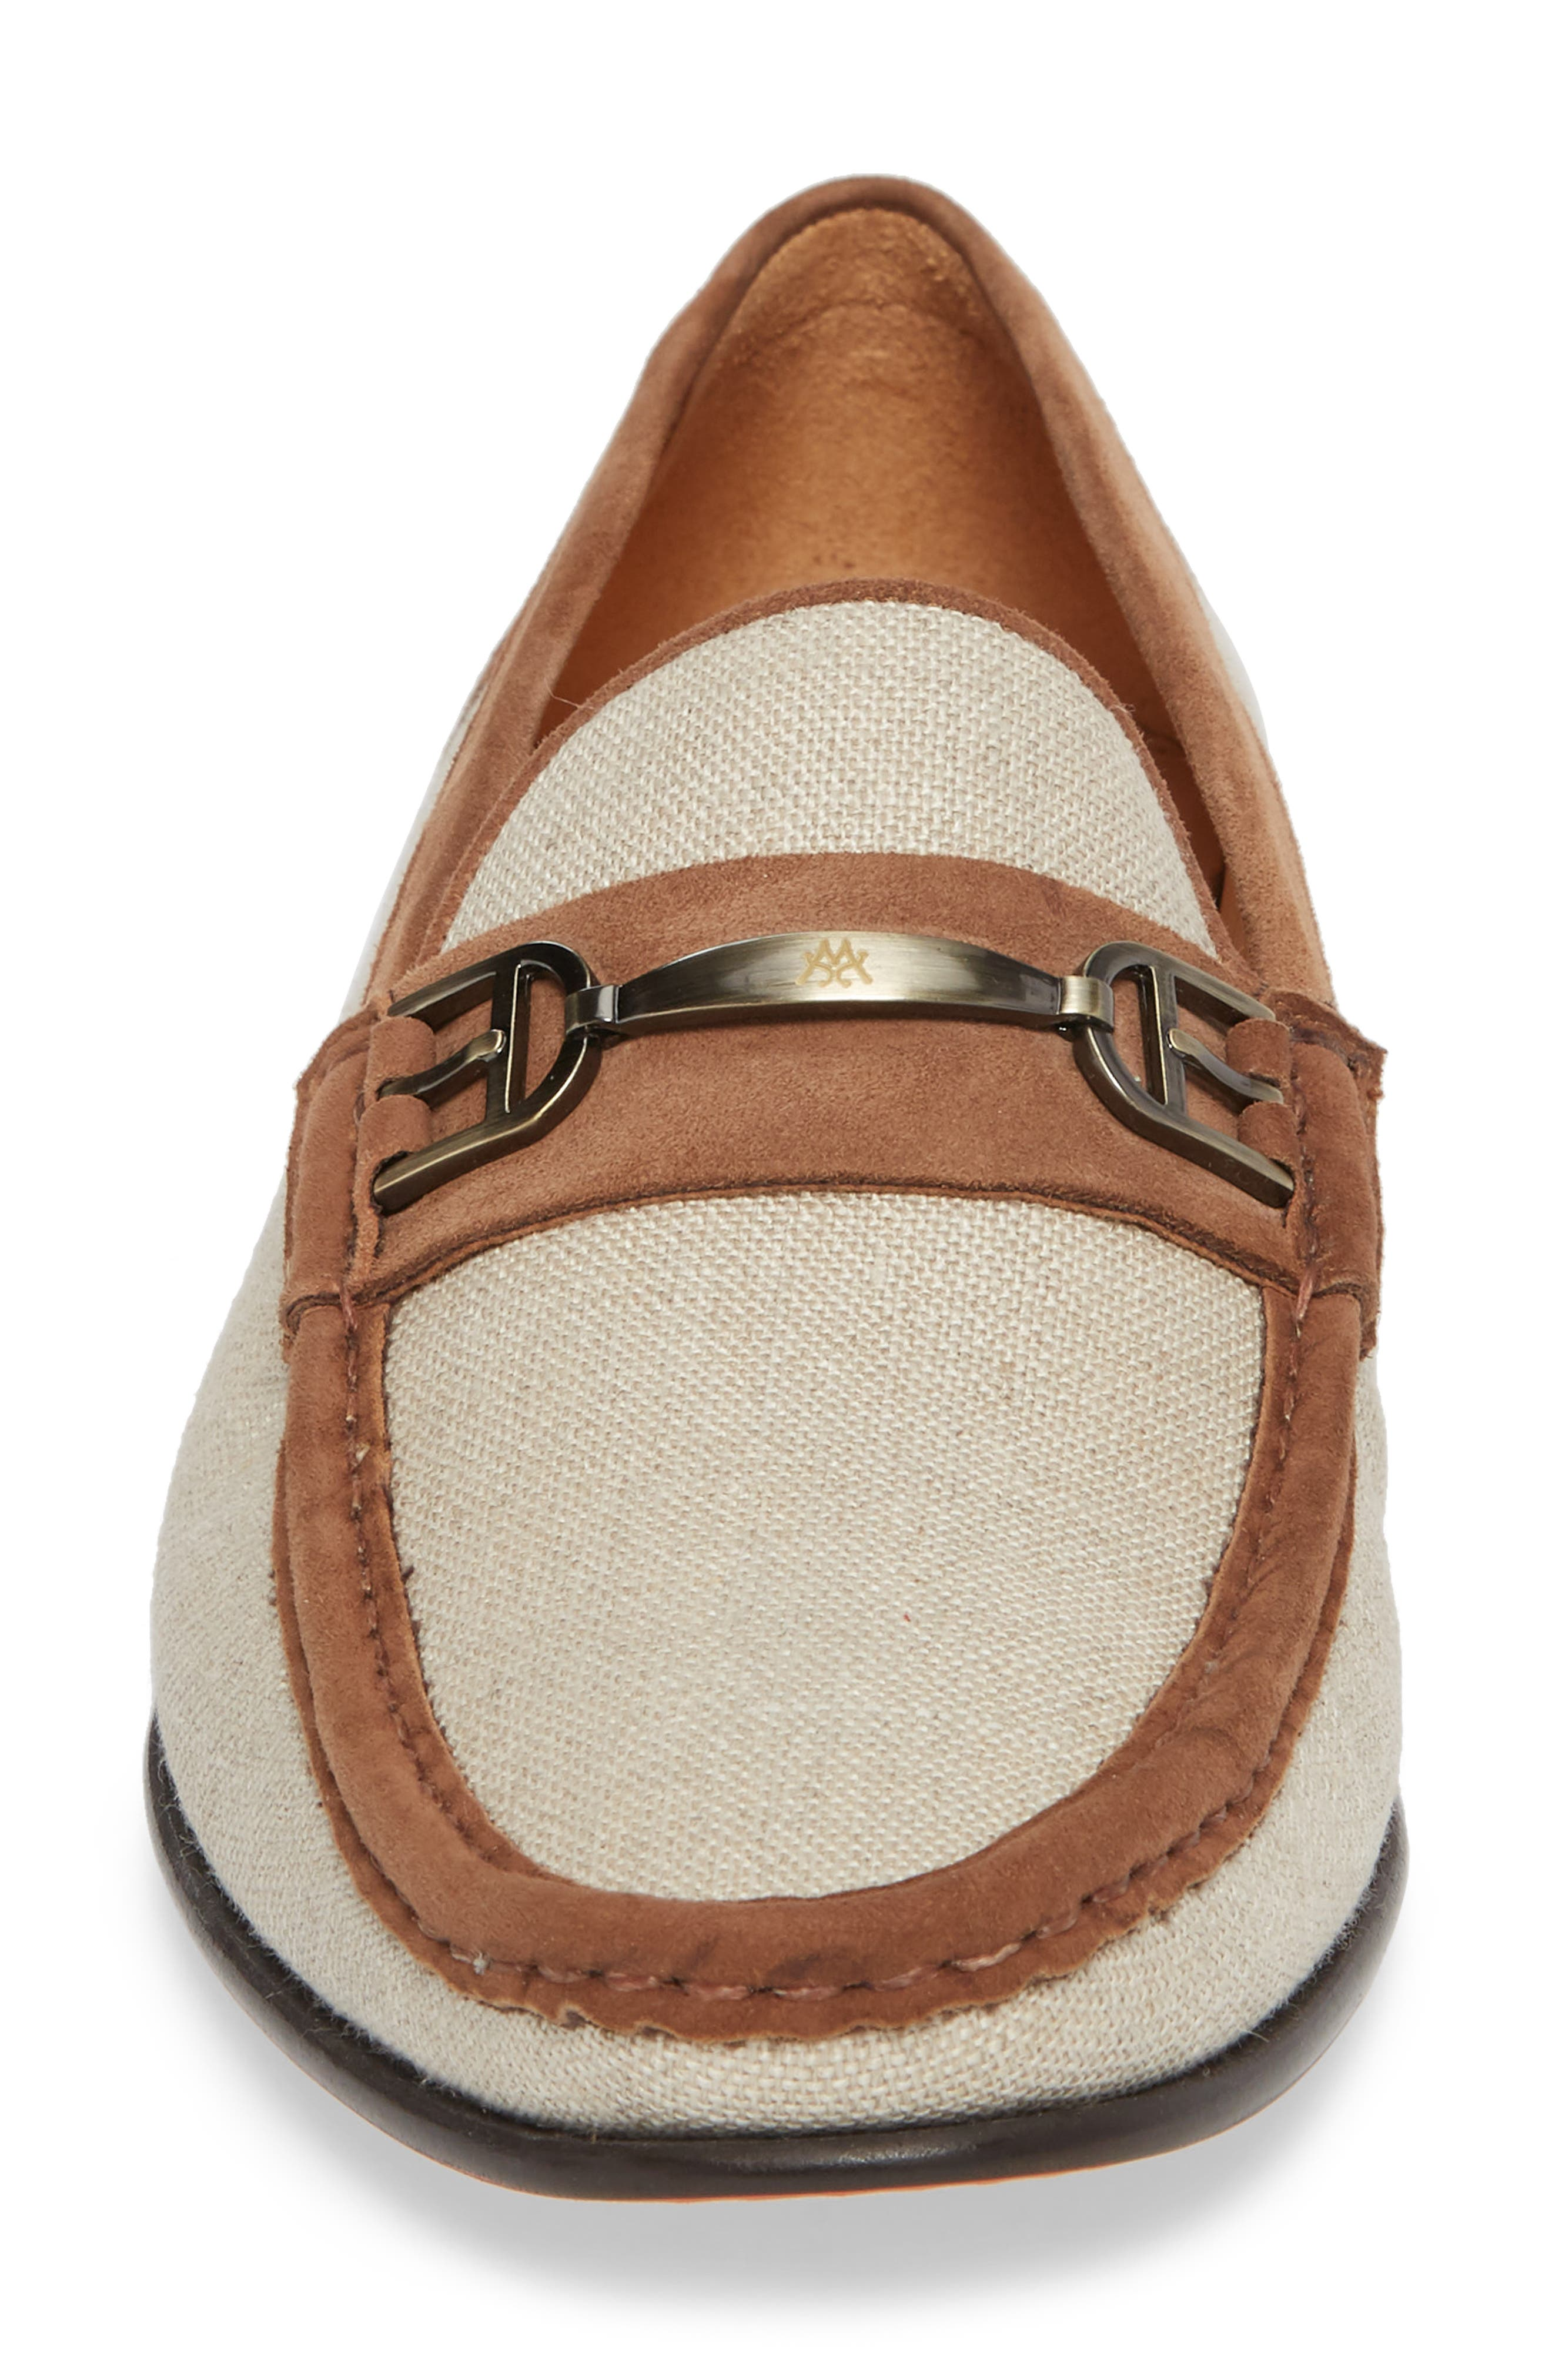 Jason Two-Tone Bit Loafer,                             Alternate thumbnail 4, color,                             BONE/ COGNAC LINEN/ SUEDE